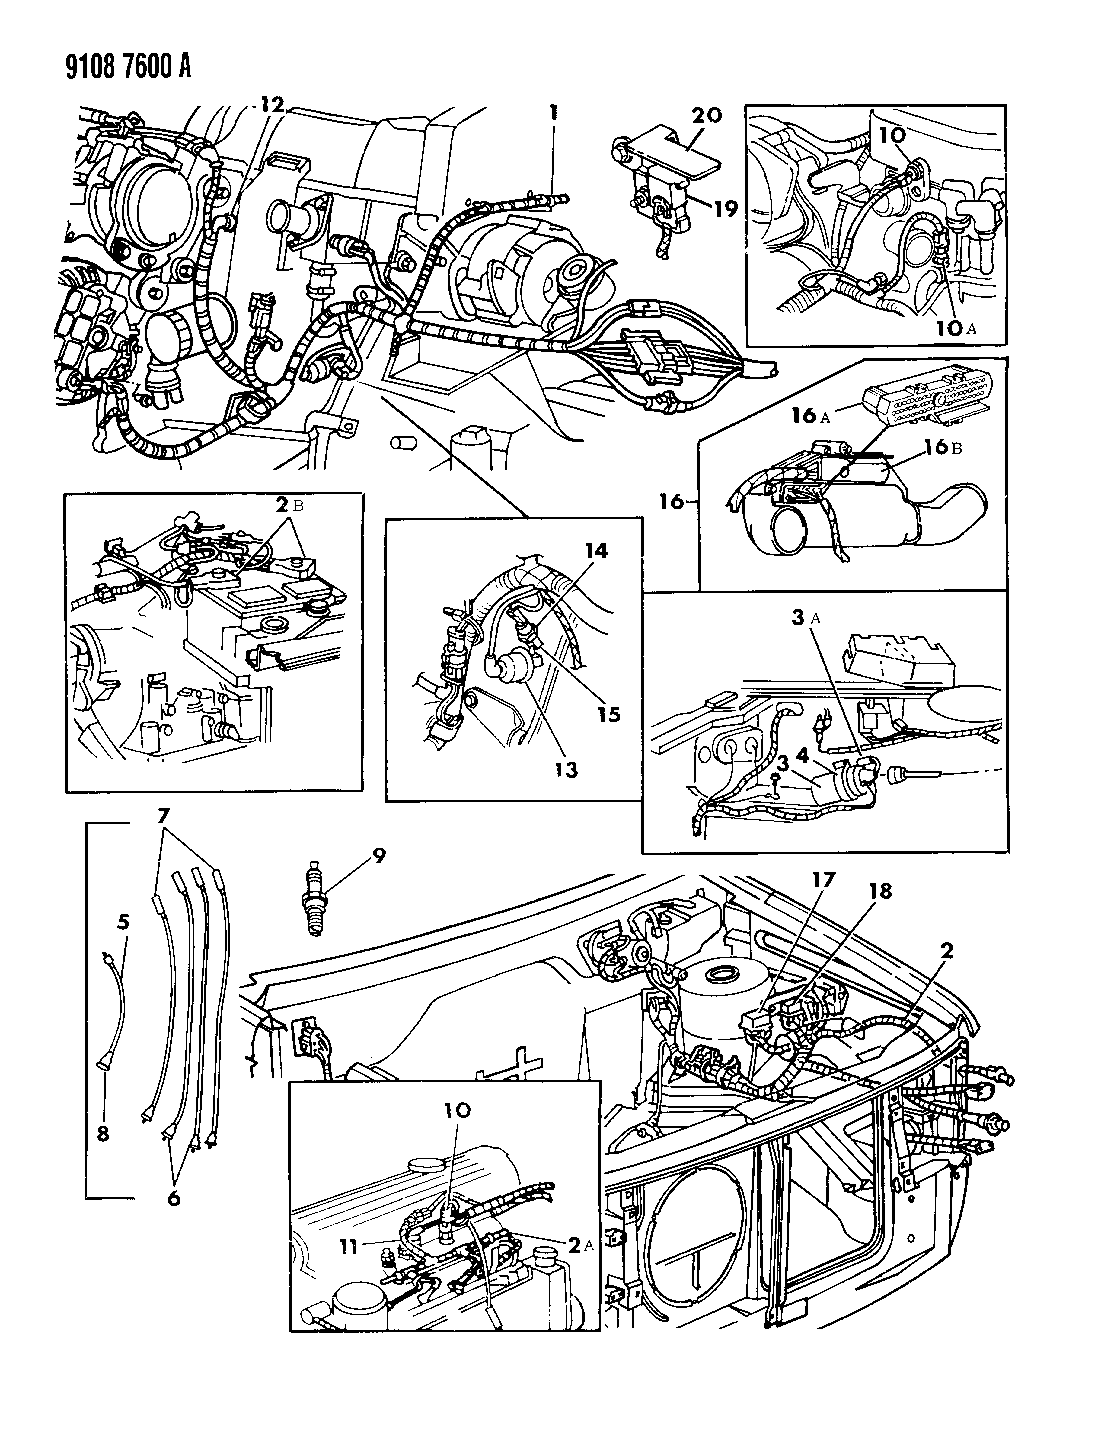 1989 Chrysler Lebaron Gts Wiring Engine Front End Related Parts Diagrams